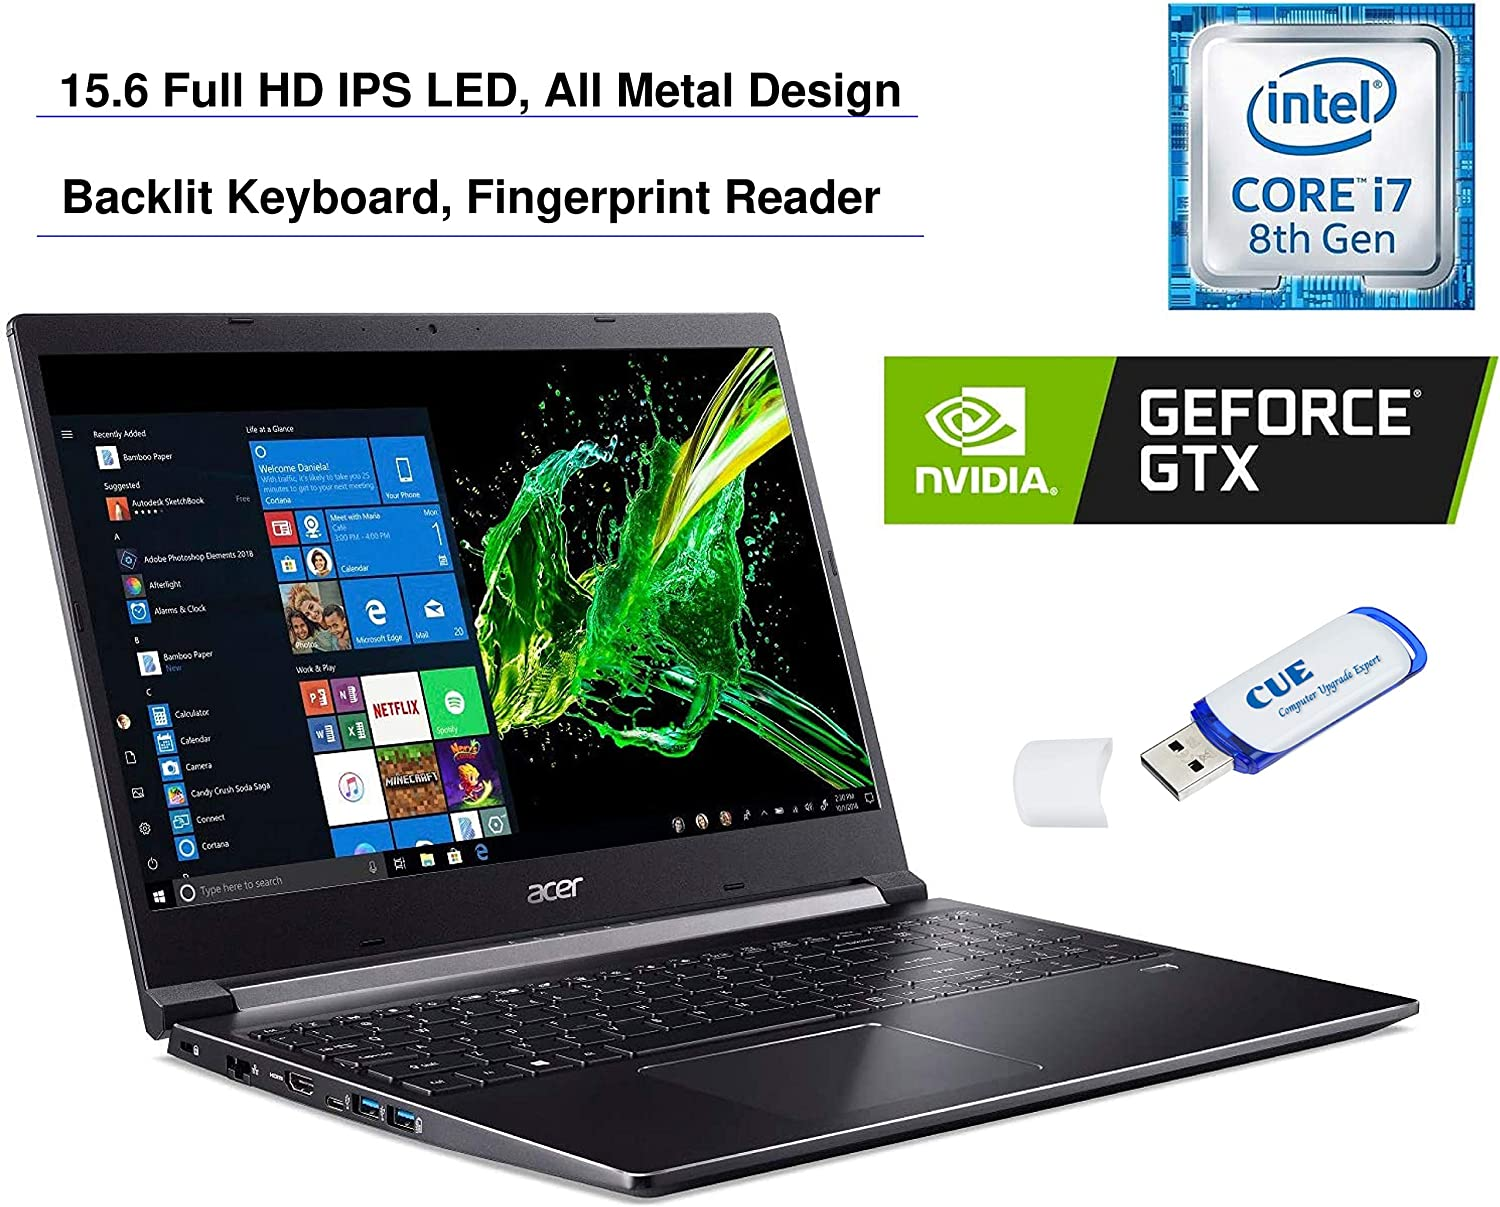 "2020 Acer Aspire 7 15.6"" FHD Display Laptop Computer, Intel Core i7-9750H, GeForce GTX 1050 3GB, 32GB RAM, 2TB HDD + 2TB SSD, Backlit Keyboard, Fingerprint Reader, Windows 10, Balck, 32GB USB Card"